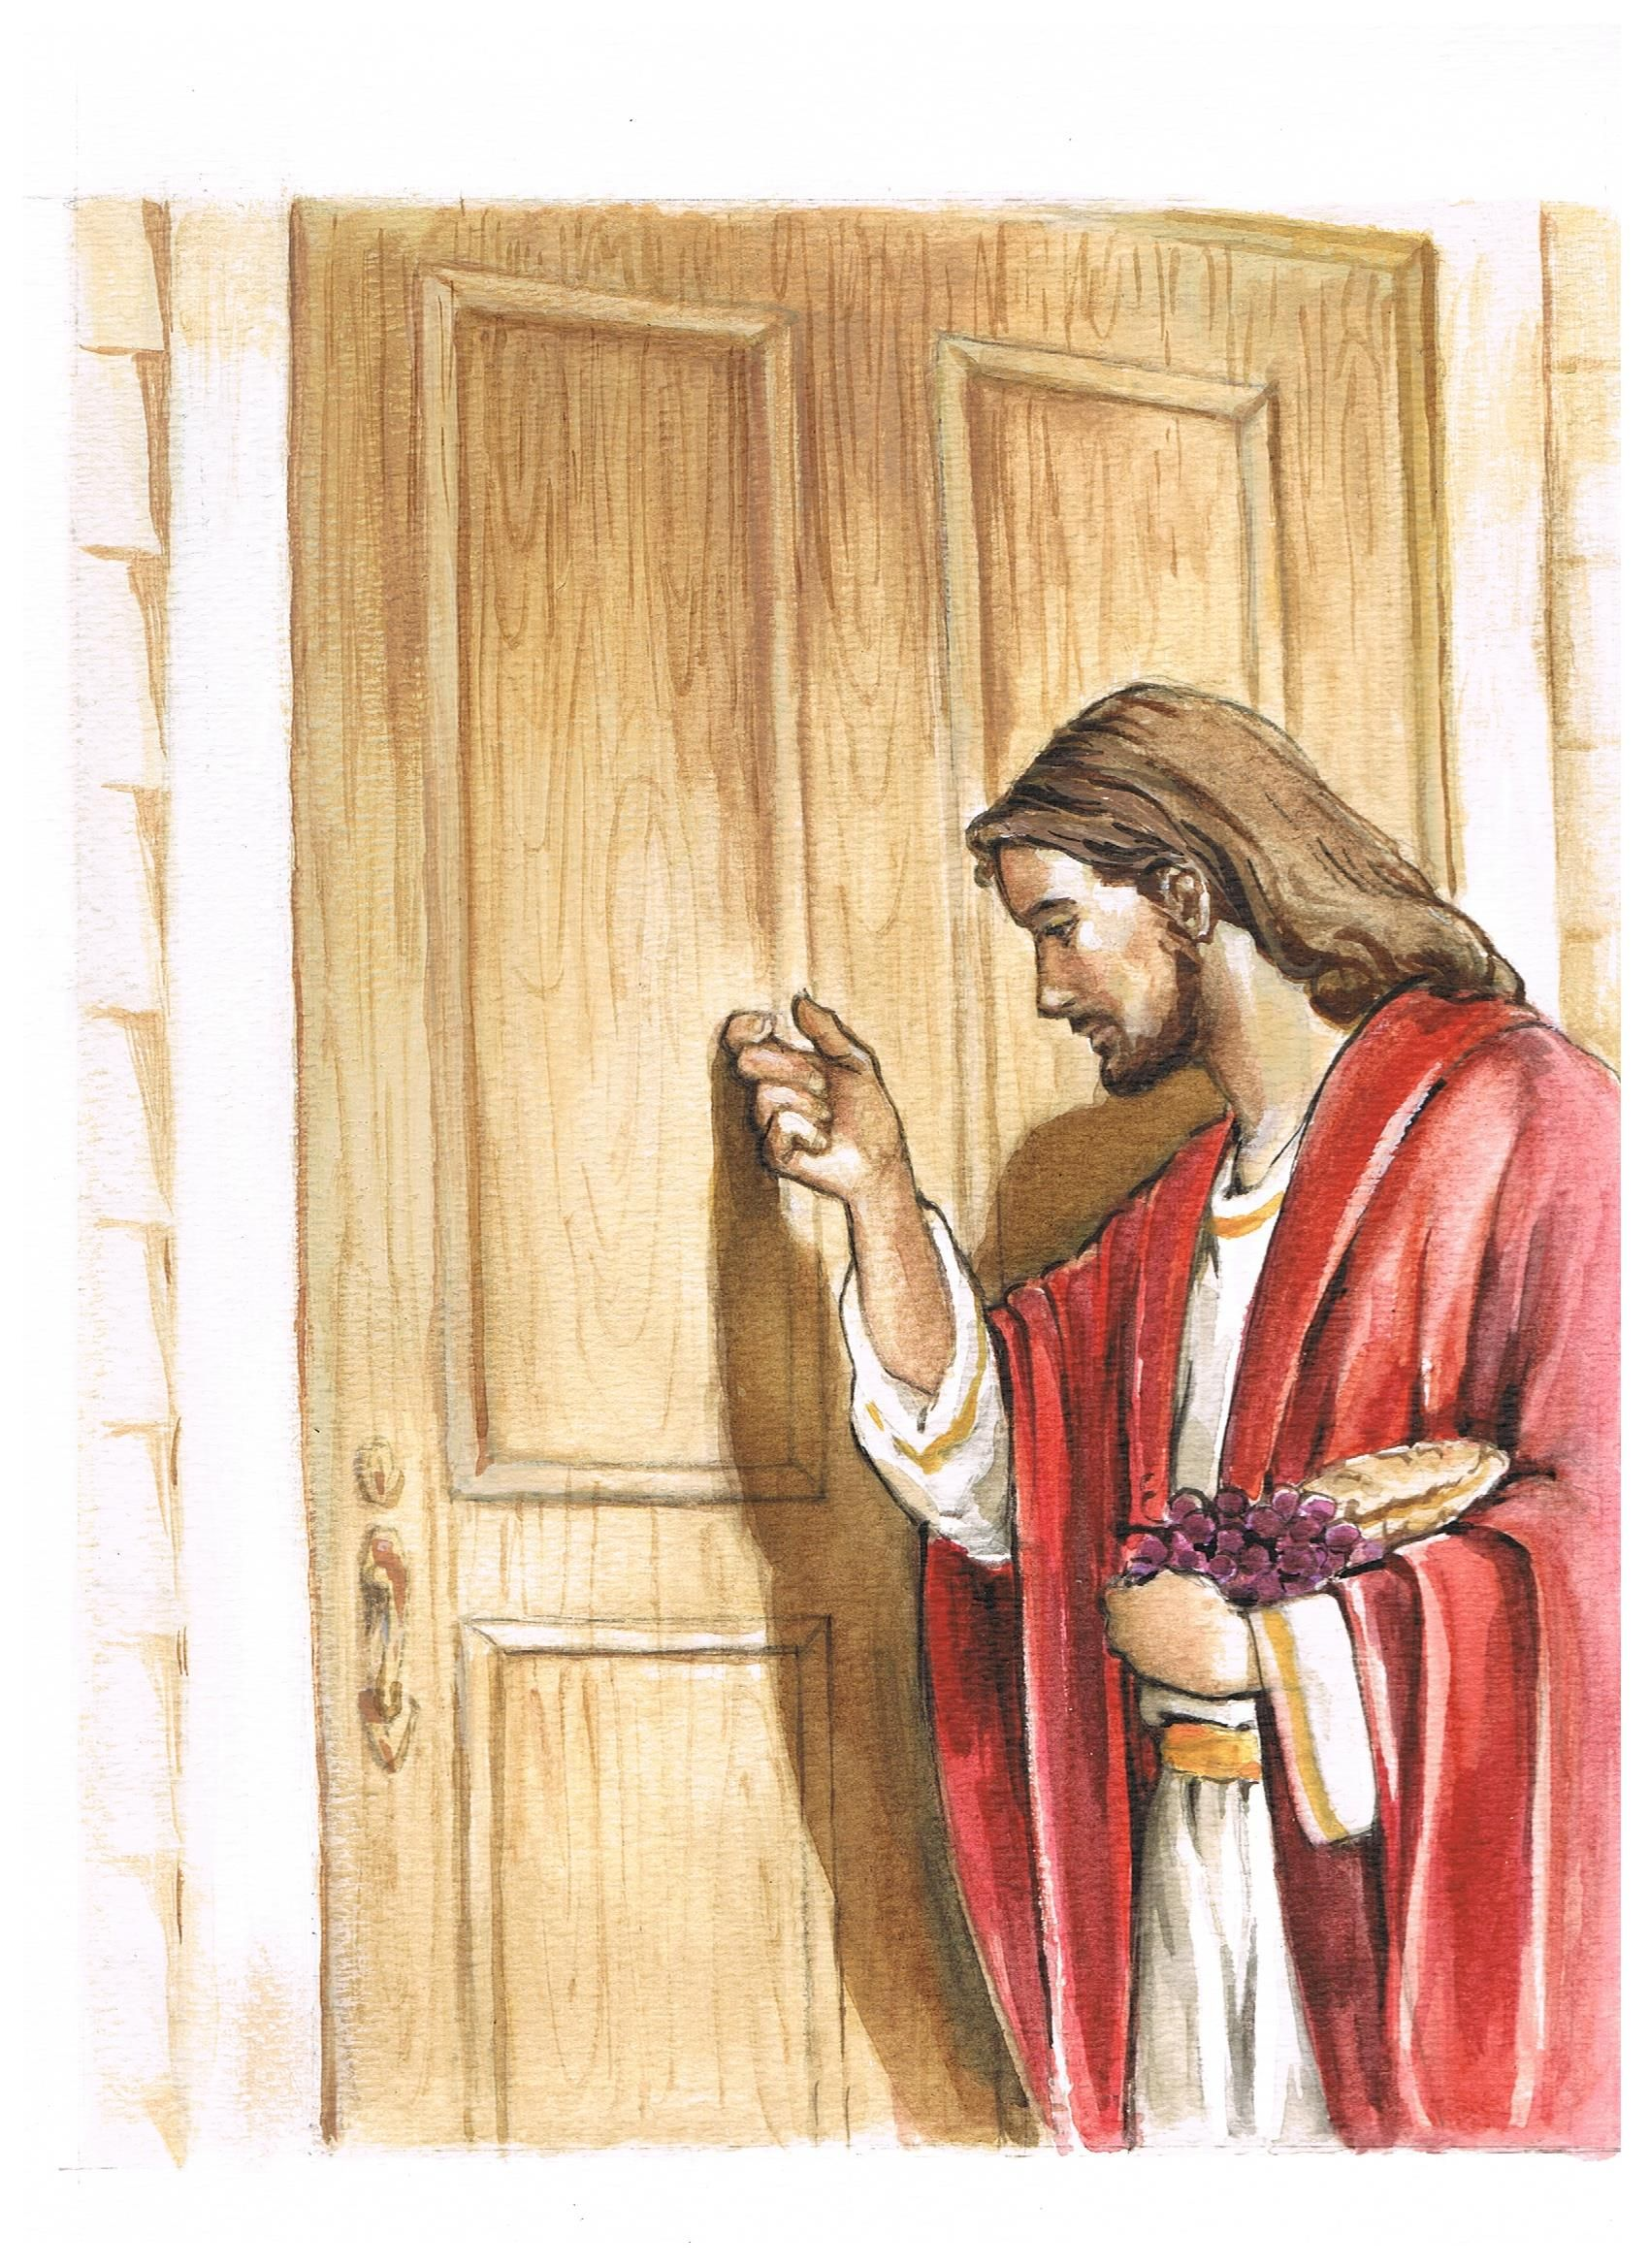 Jesus knocking at the door misc pinterest jesus knocking at the door altavistaventures Gallery